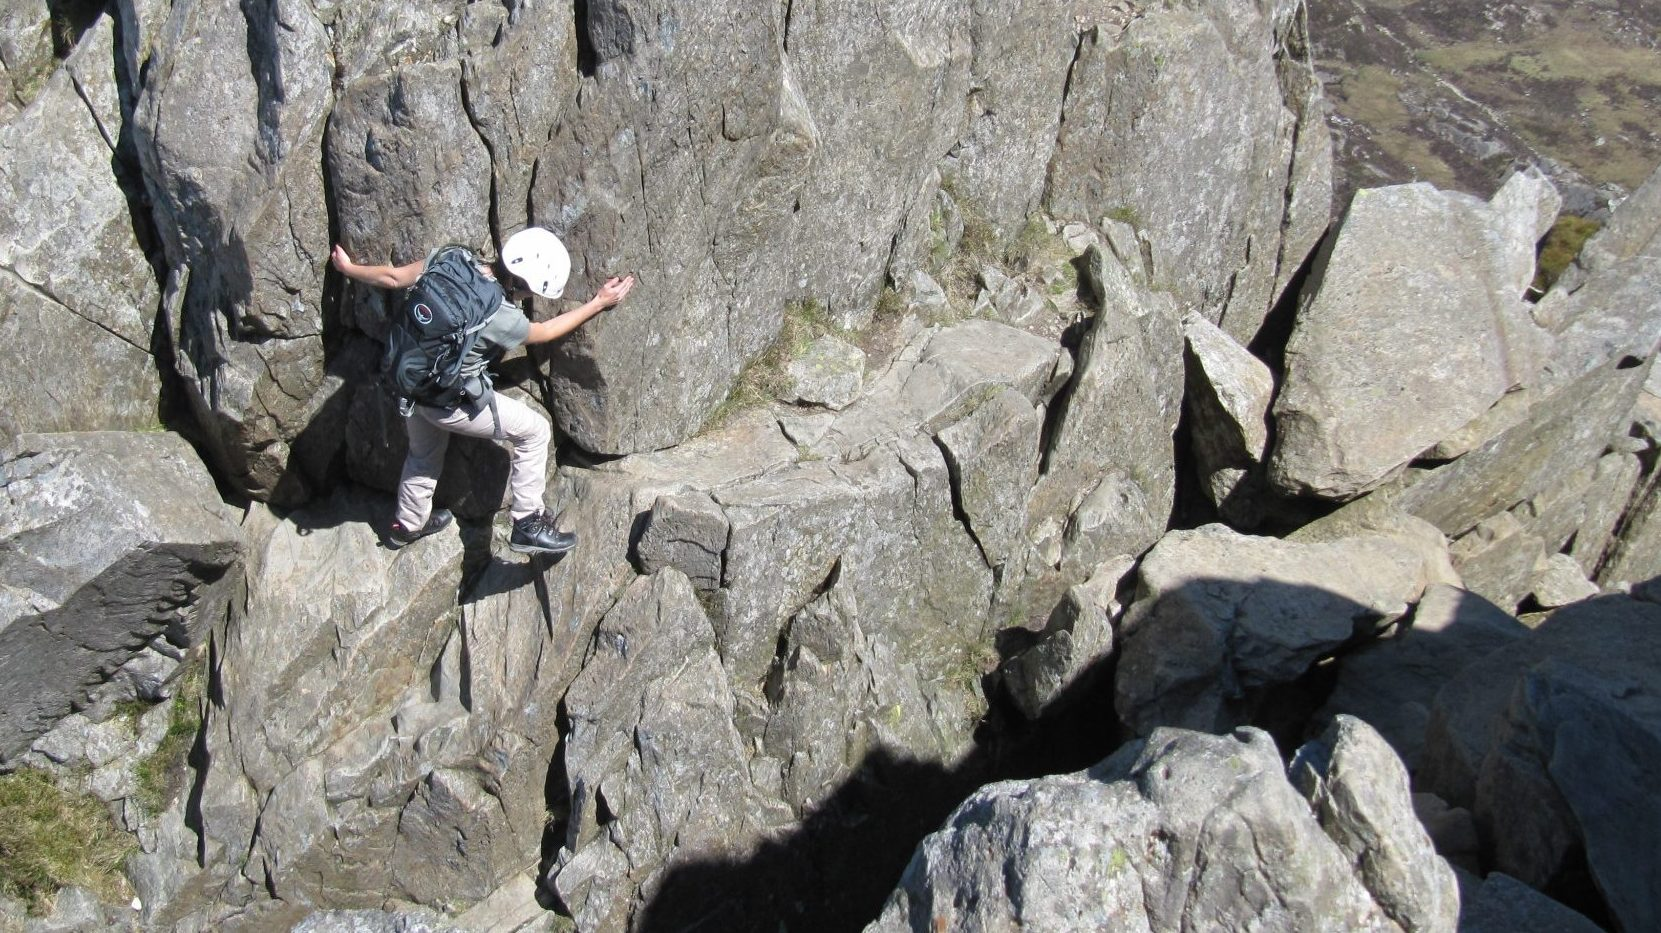 A scrambler descends cautiously into The Notch on the North Ridge of Tryfan during a scrambling course